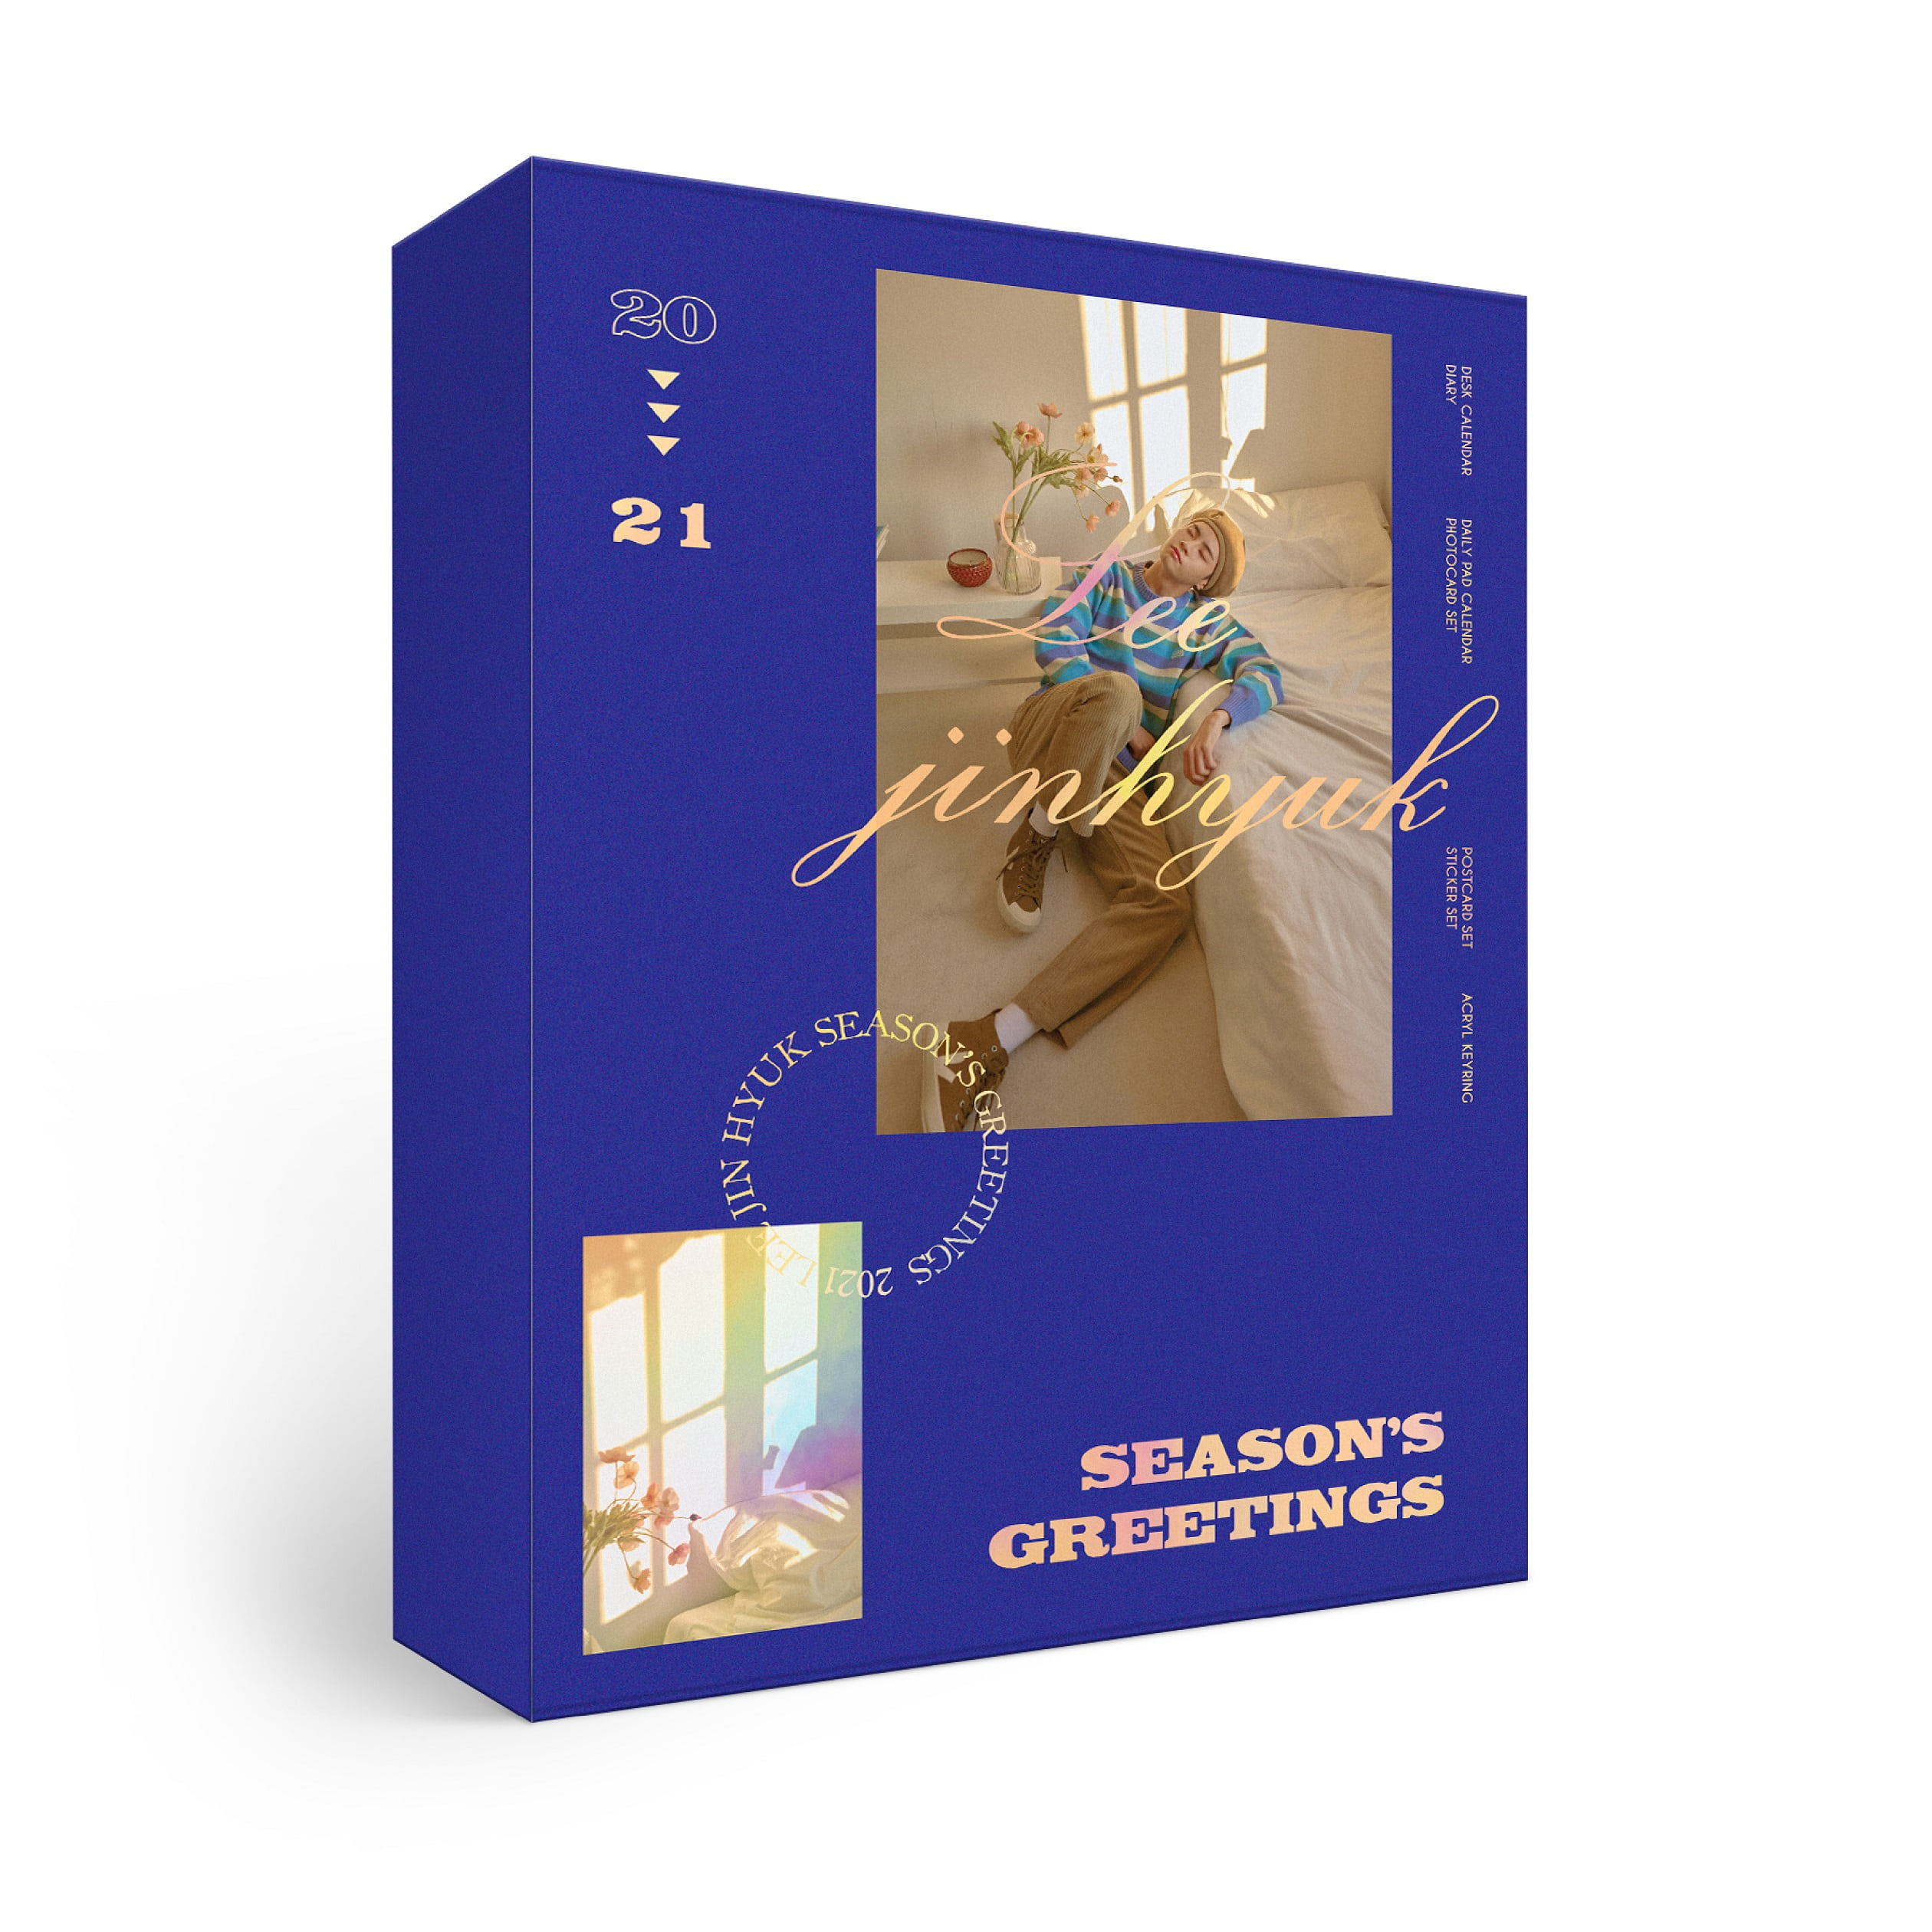 [PRE-ORDER] ★Provides KPOPSTORE Special Gift★李镇赫(LEE JIN HYUK) - 2021 SEASON'S GREETINGS (*No Poster)케이팝스토어(kpop store)